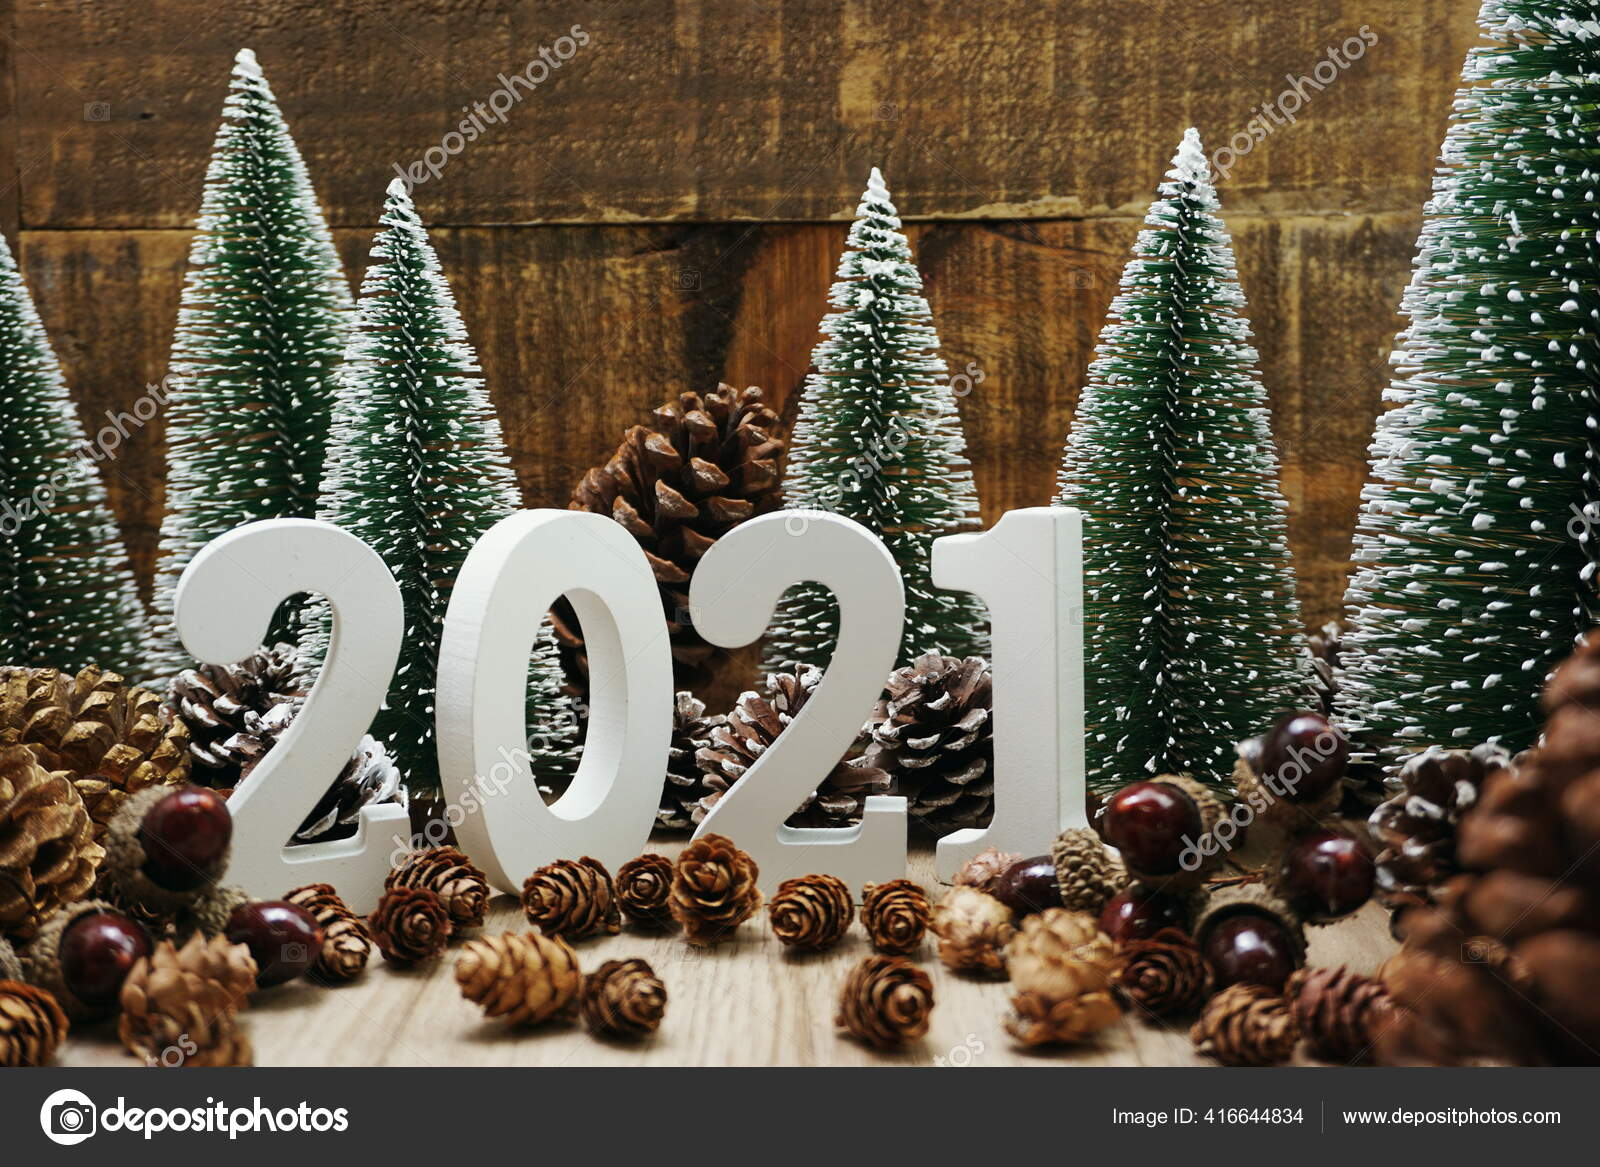 Christmas Tree Recolection 2021 Happy New Year 2021 Festive Background Christmas Tree Pine Cone Stock Photo Image By C May1985 416644834